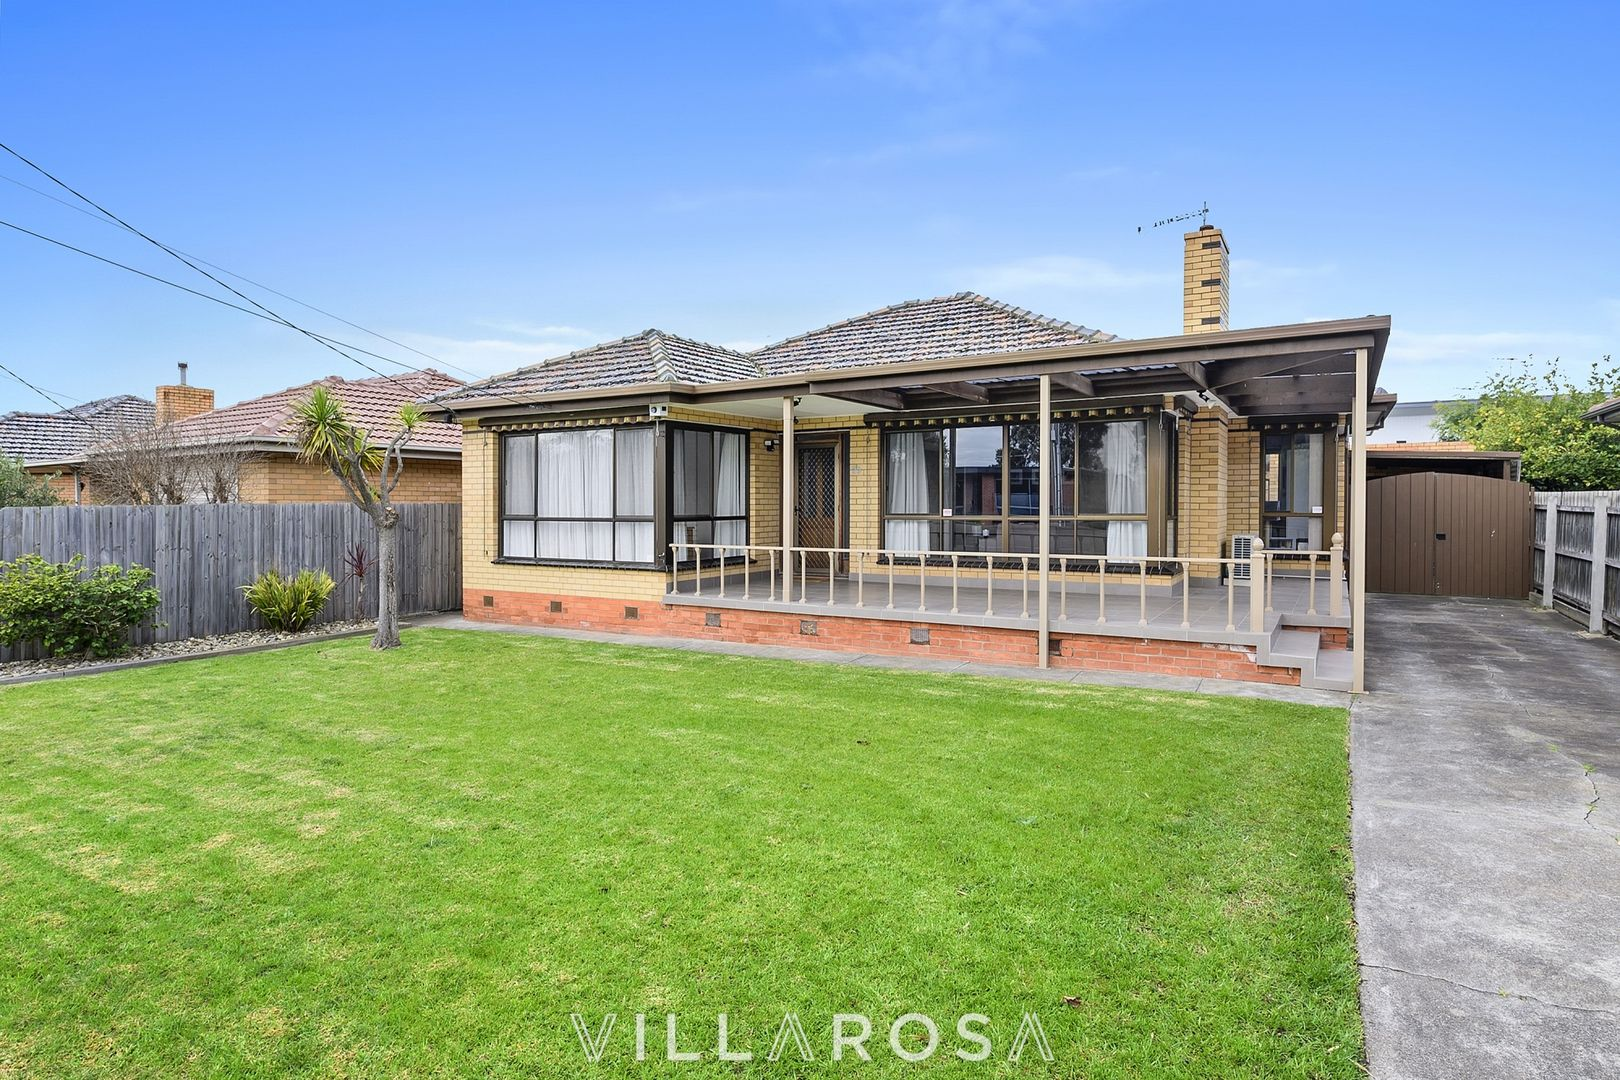 29 Alicia Street, Bell Park VIC 3215, Image 0